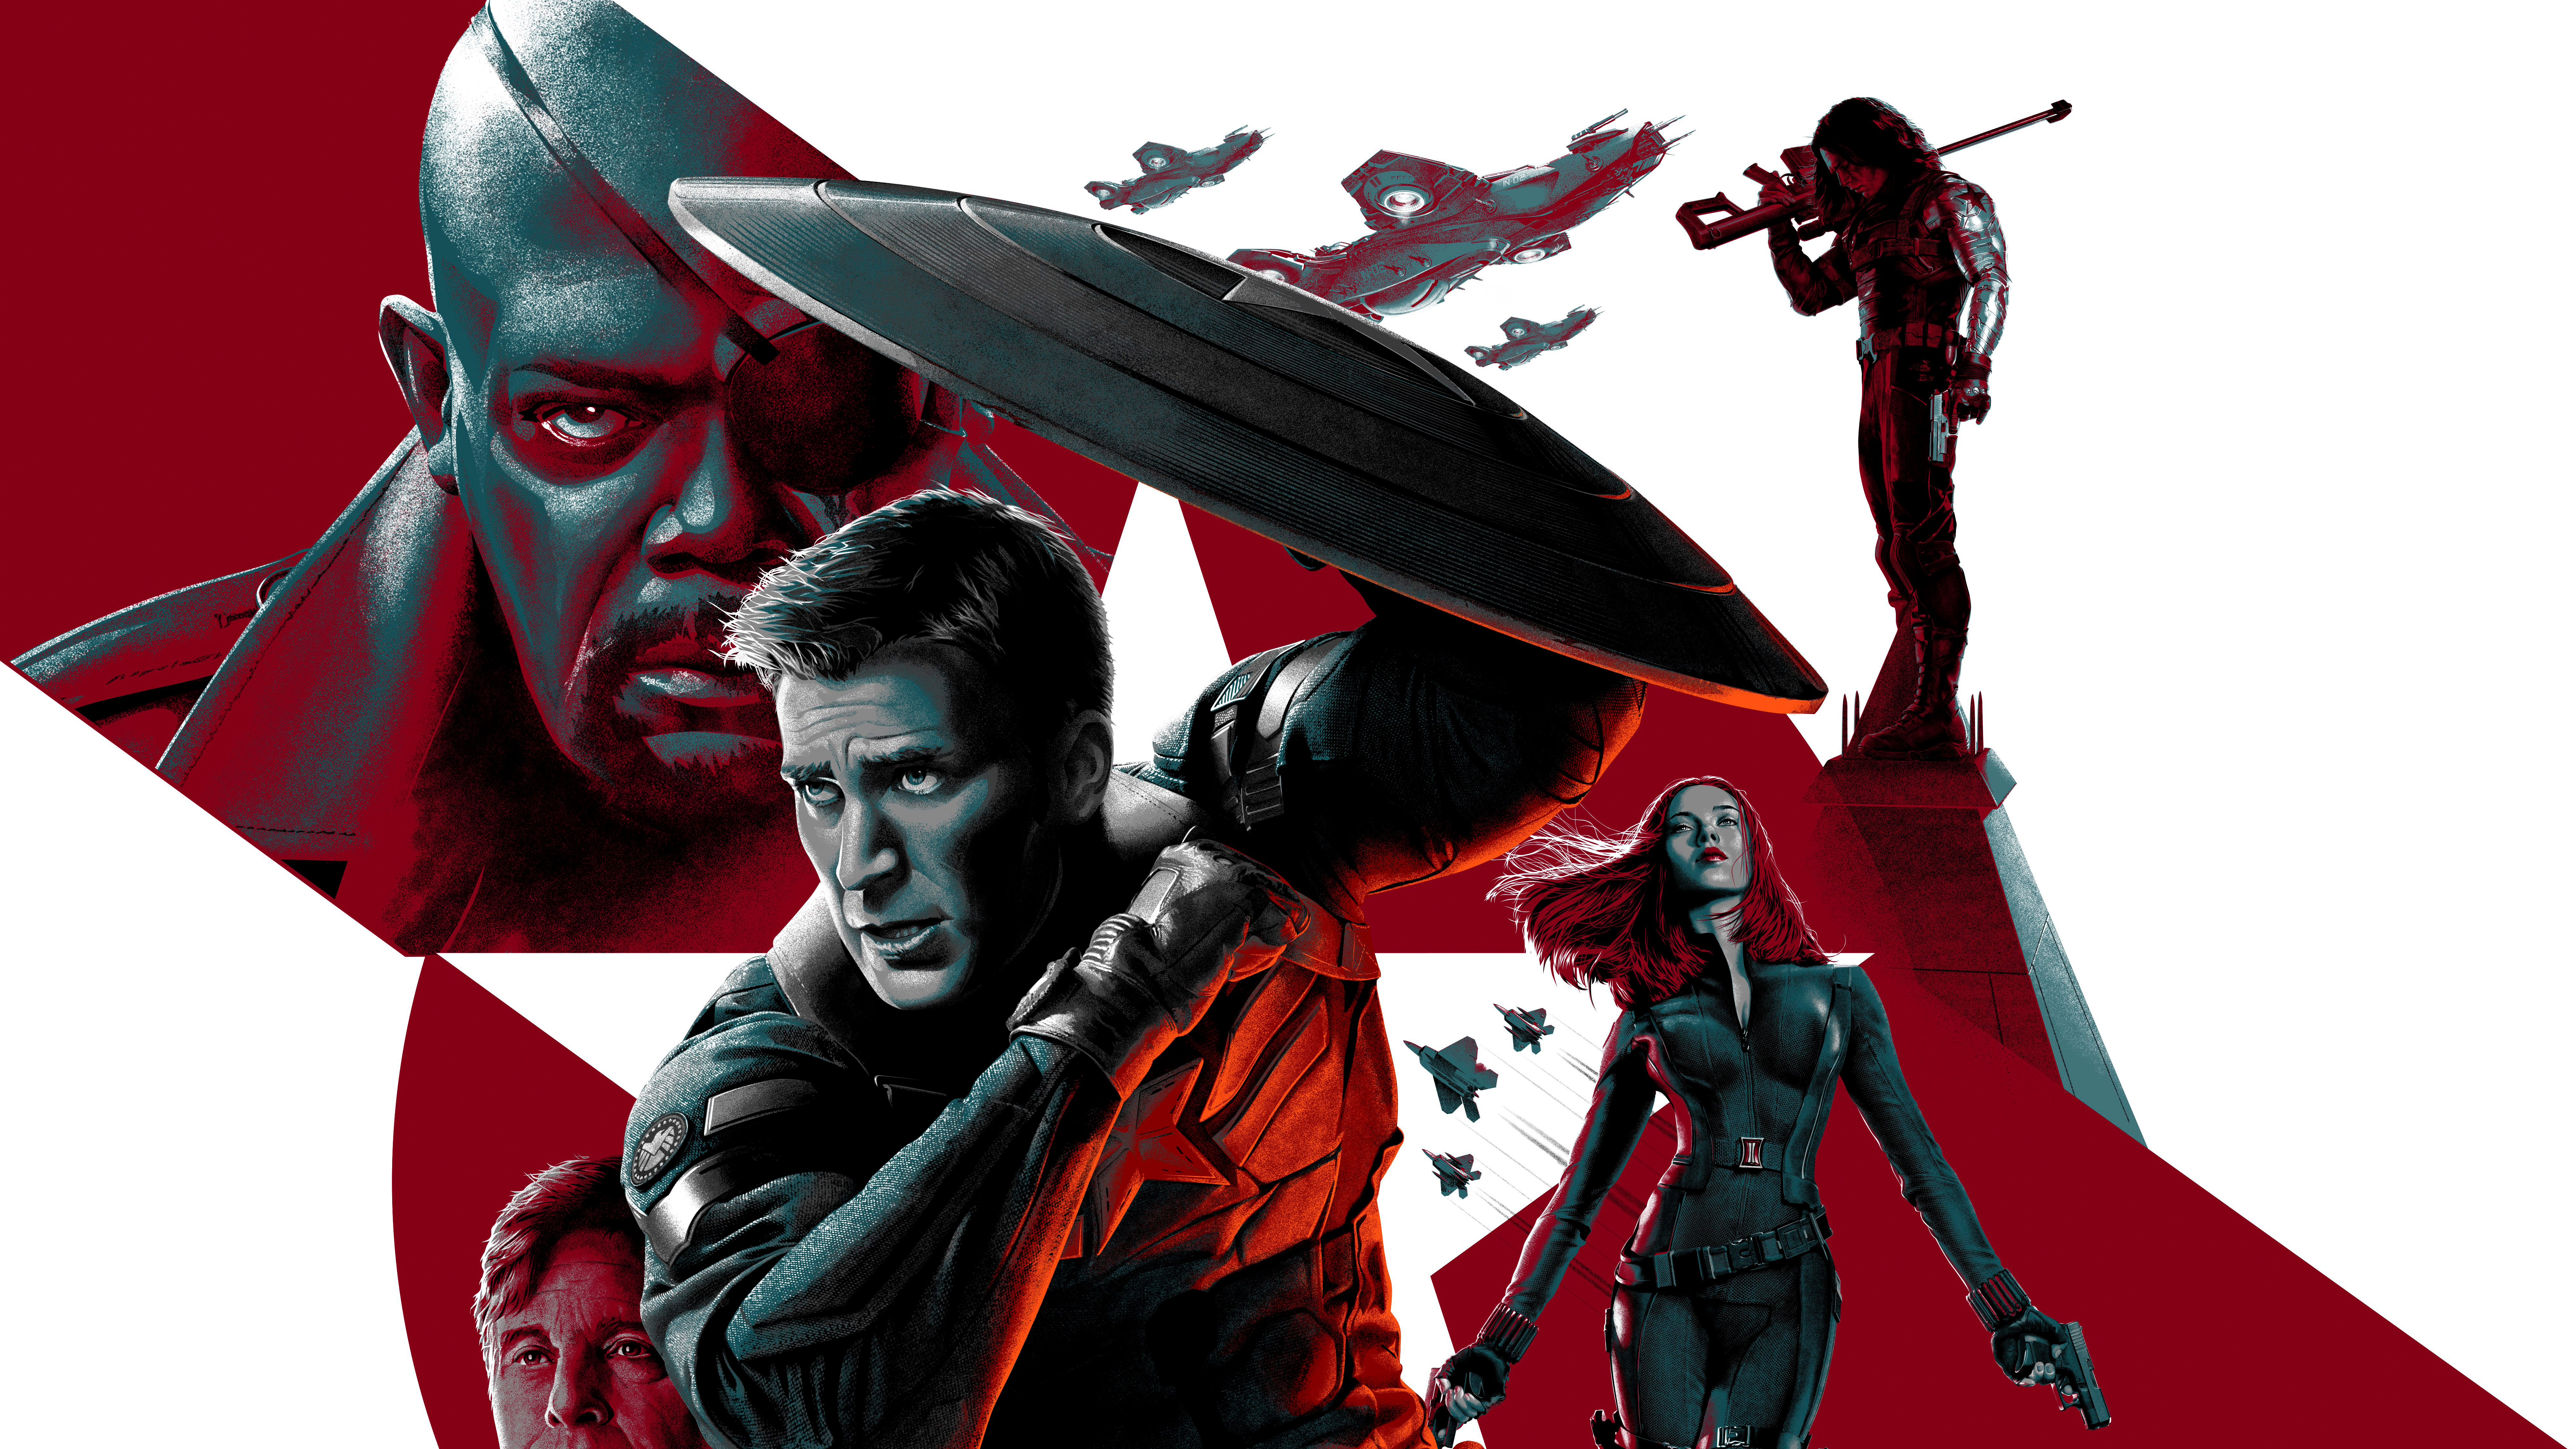 Captain America The Winter Soldier 8k, HD Movies, 4k